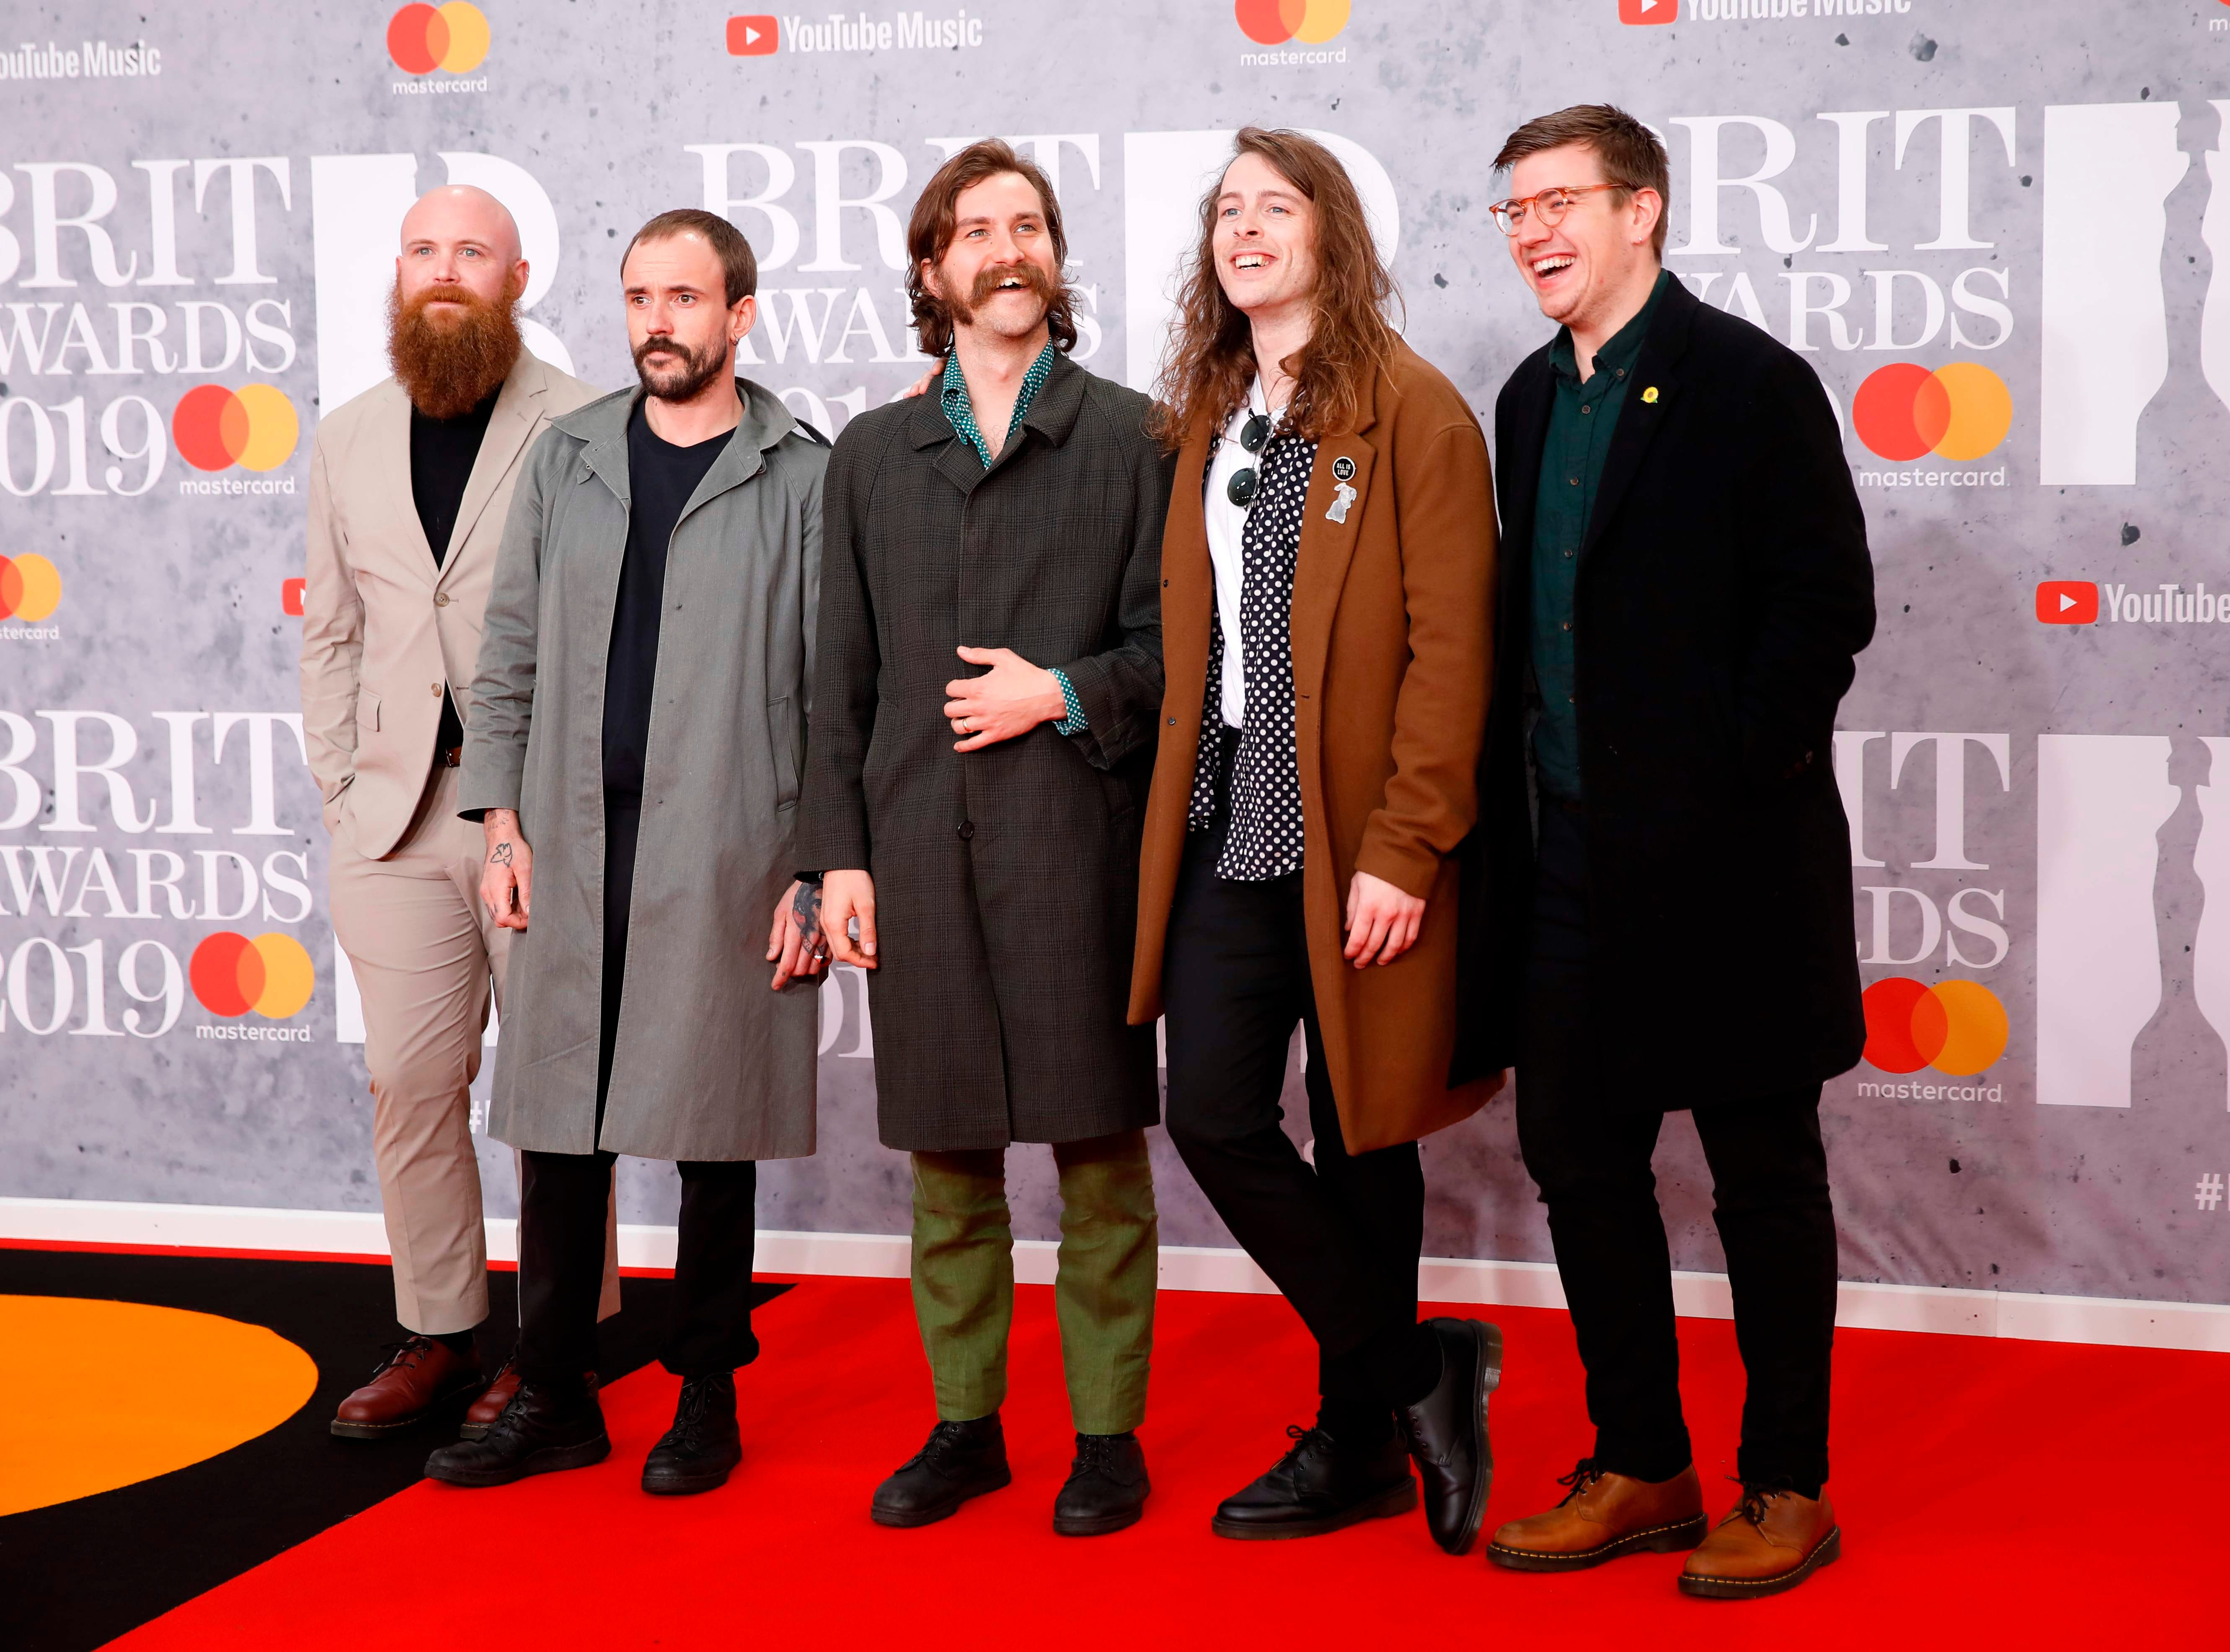 British punk rock band 'IDLES', Joe Talbot, Adam Devonshire, Mark Bowen, Lee Kiernan and Jon Beavis pose on the red carpet on arrival for the BRIT Awards 2019 in London on February 20, 2019. (Photo by Tolga AKMEN / AFP) / RESTRICTED TO EDITORIAL USE  NO POSTERS  NO MERCHANDISE NO USE IN PUBLICATIONS DEVOTED TO ARTISTSTOLGA AKMEN/AFP/Getty Images ORIG FILE ID: AFP_1DO09Z